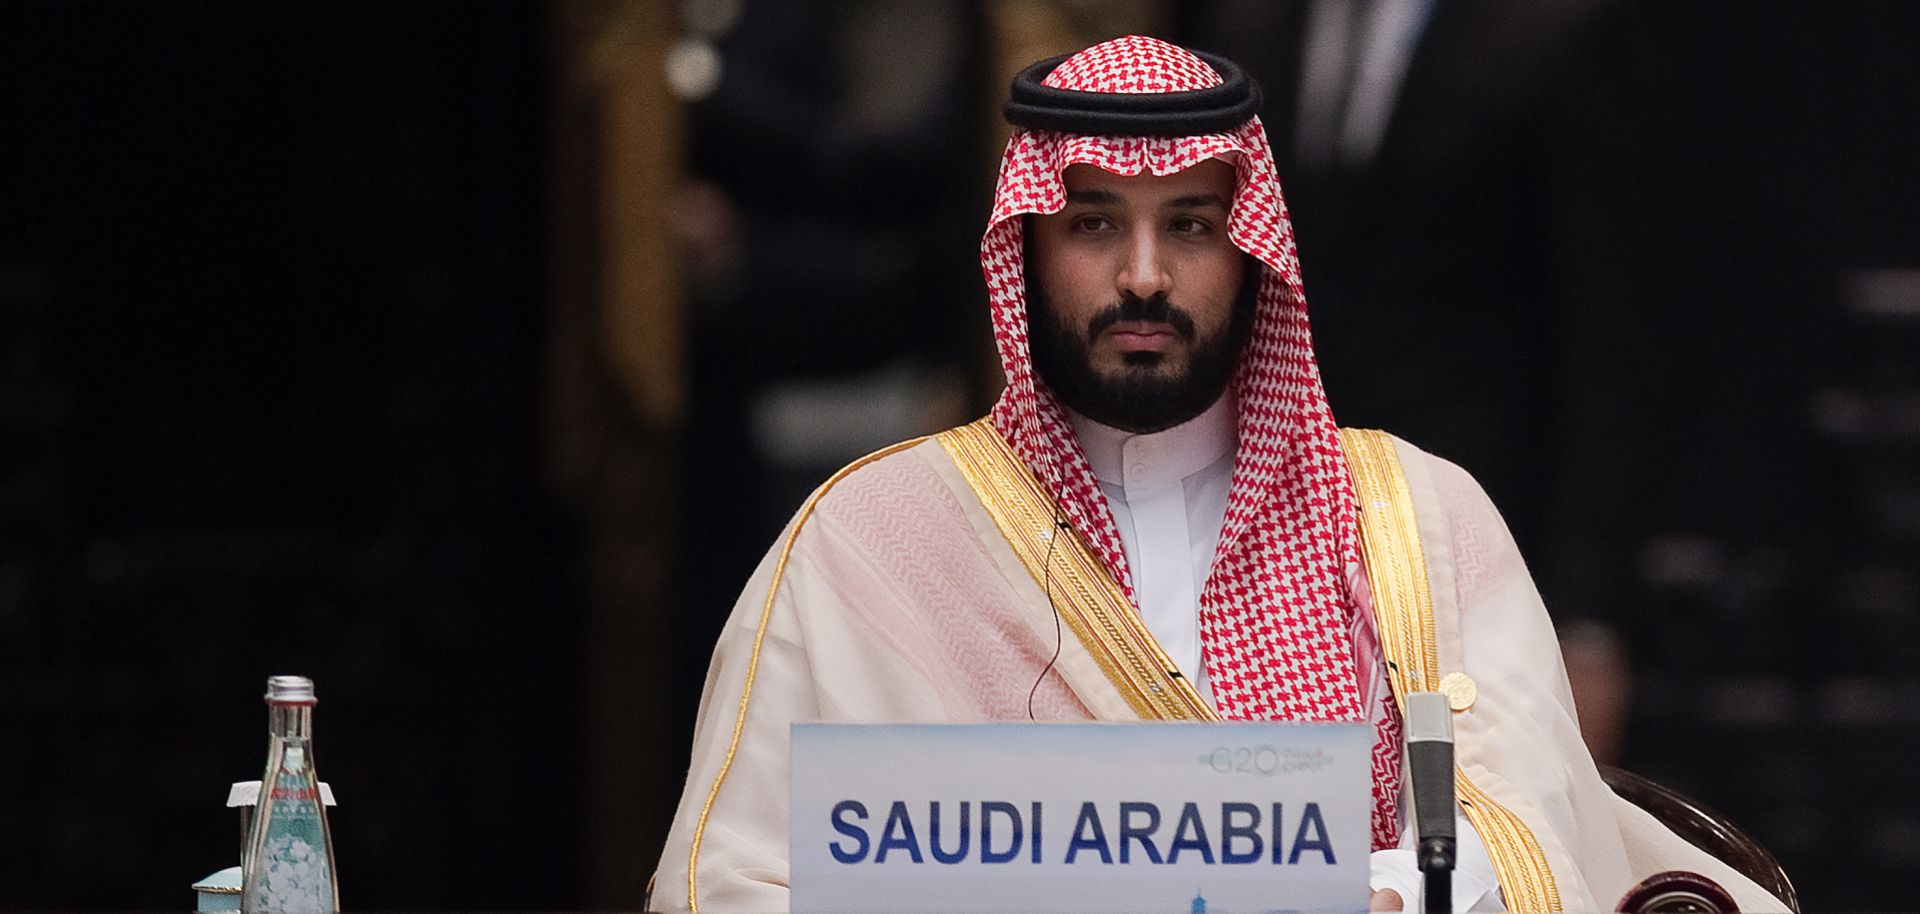 """Saudi Crown Prince Mohammed bin Salman has been called """"Mr. Everything"""" by several foreign governments. He now has a direct path to the throne."""